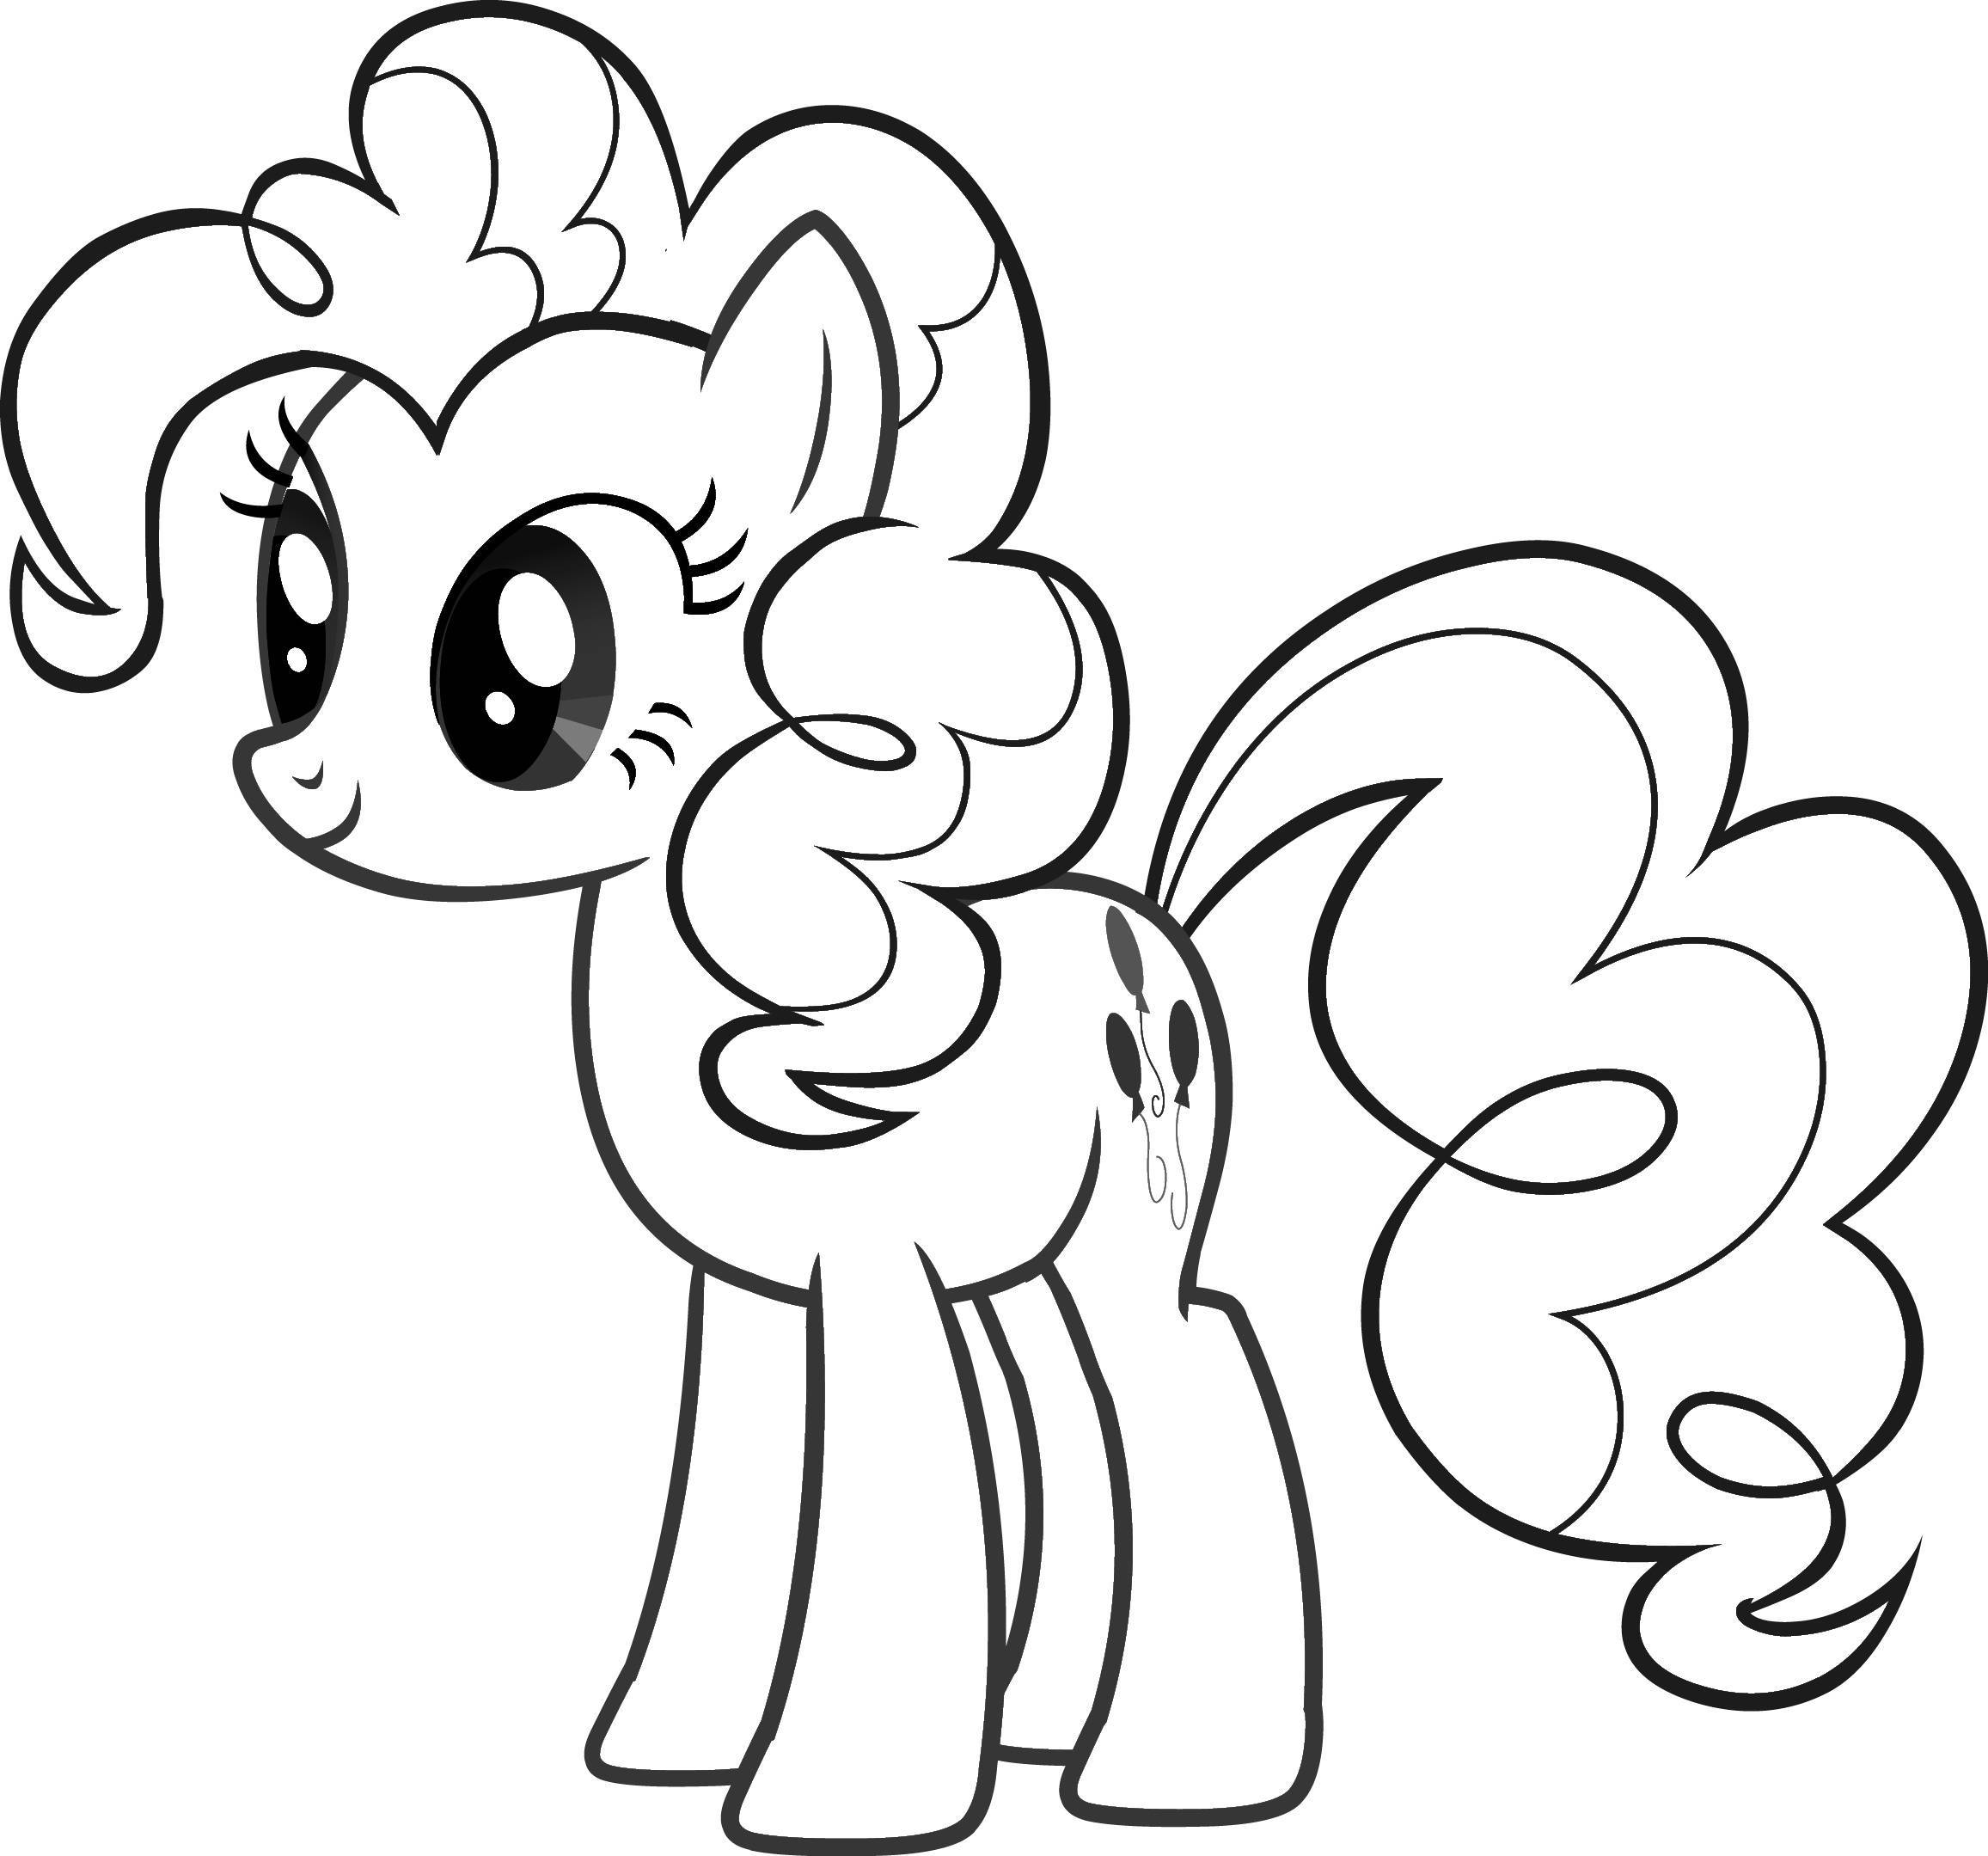 2313x2159 Stunning Printable My Little Pony Coloring Pages For Kids Image